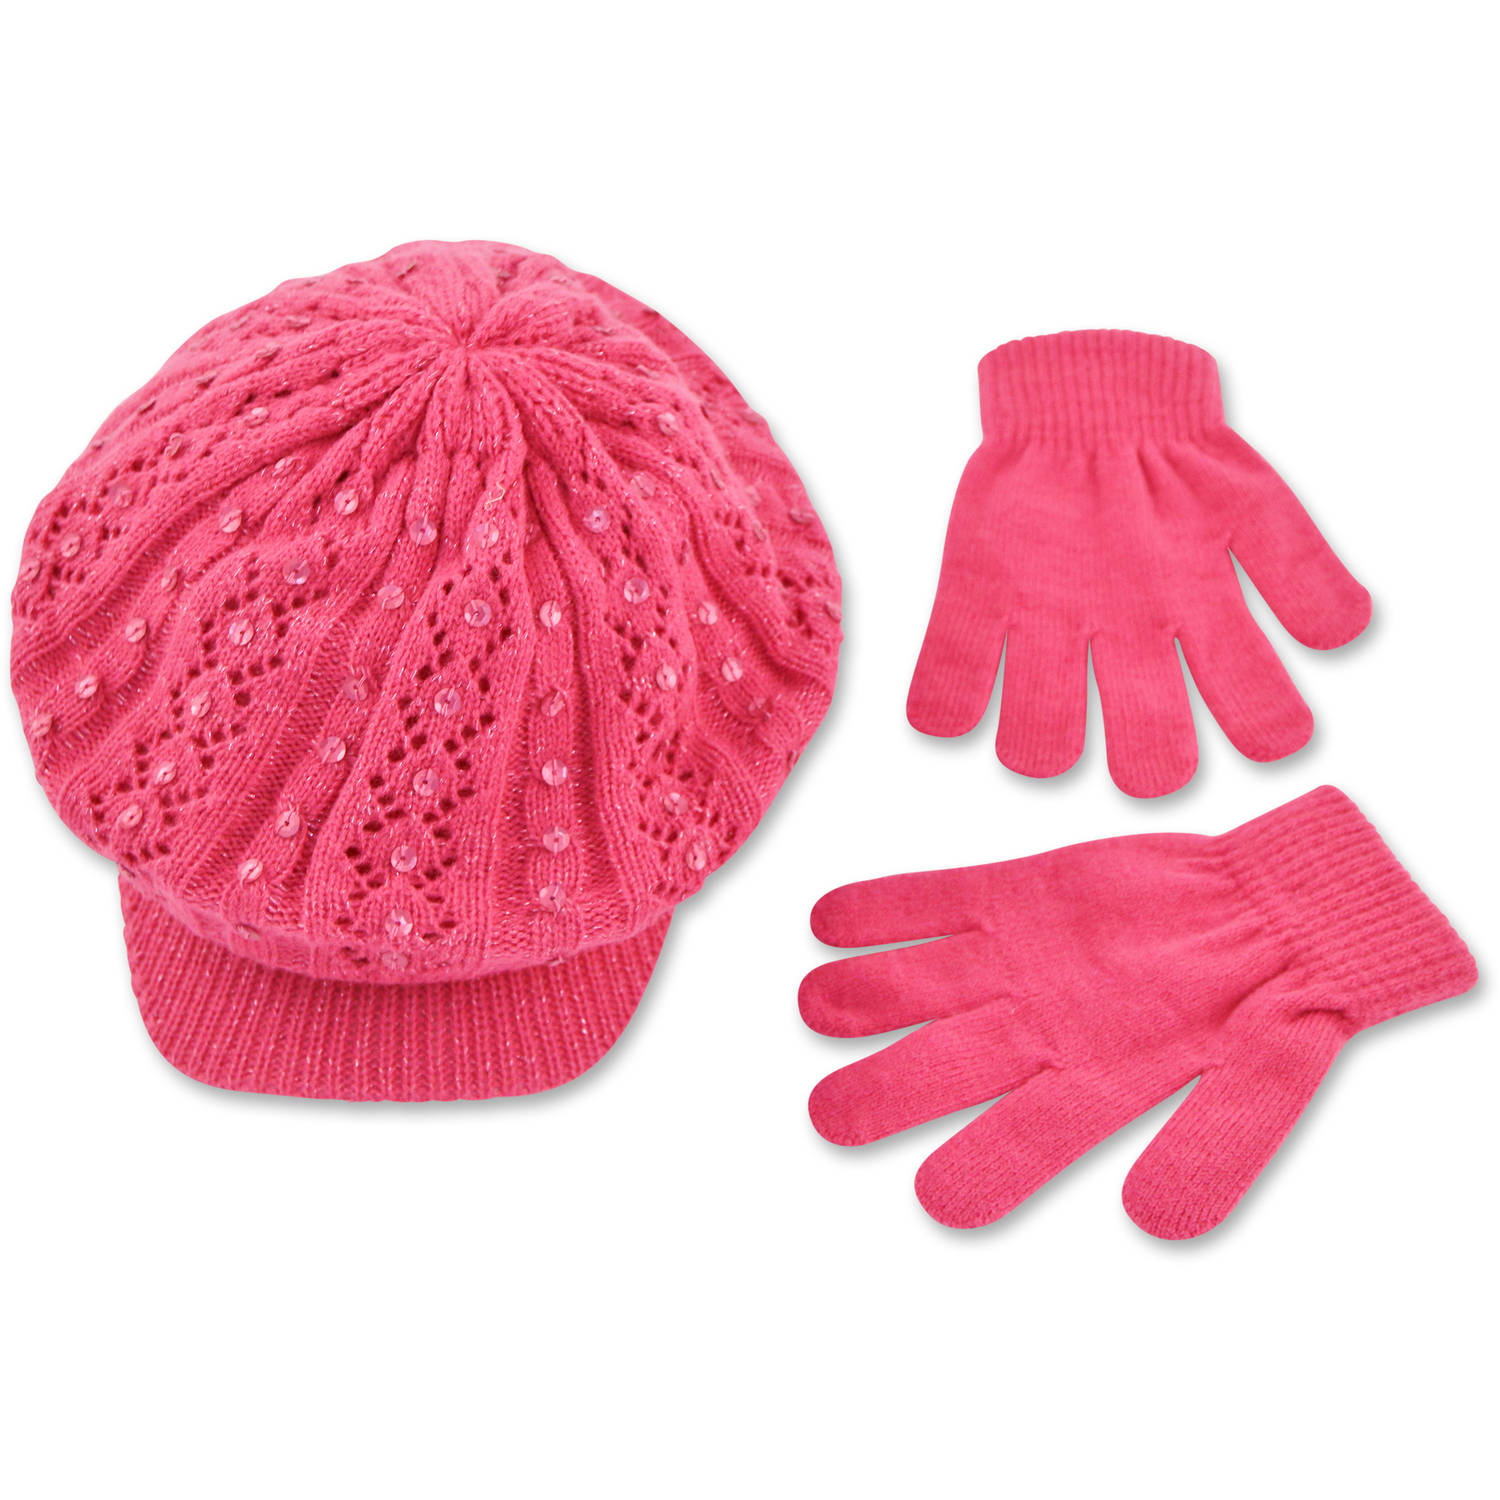 Image of ABG pink sparkle knit cabbie hat with glove set.